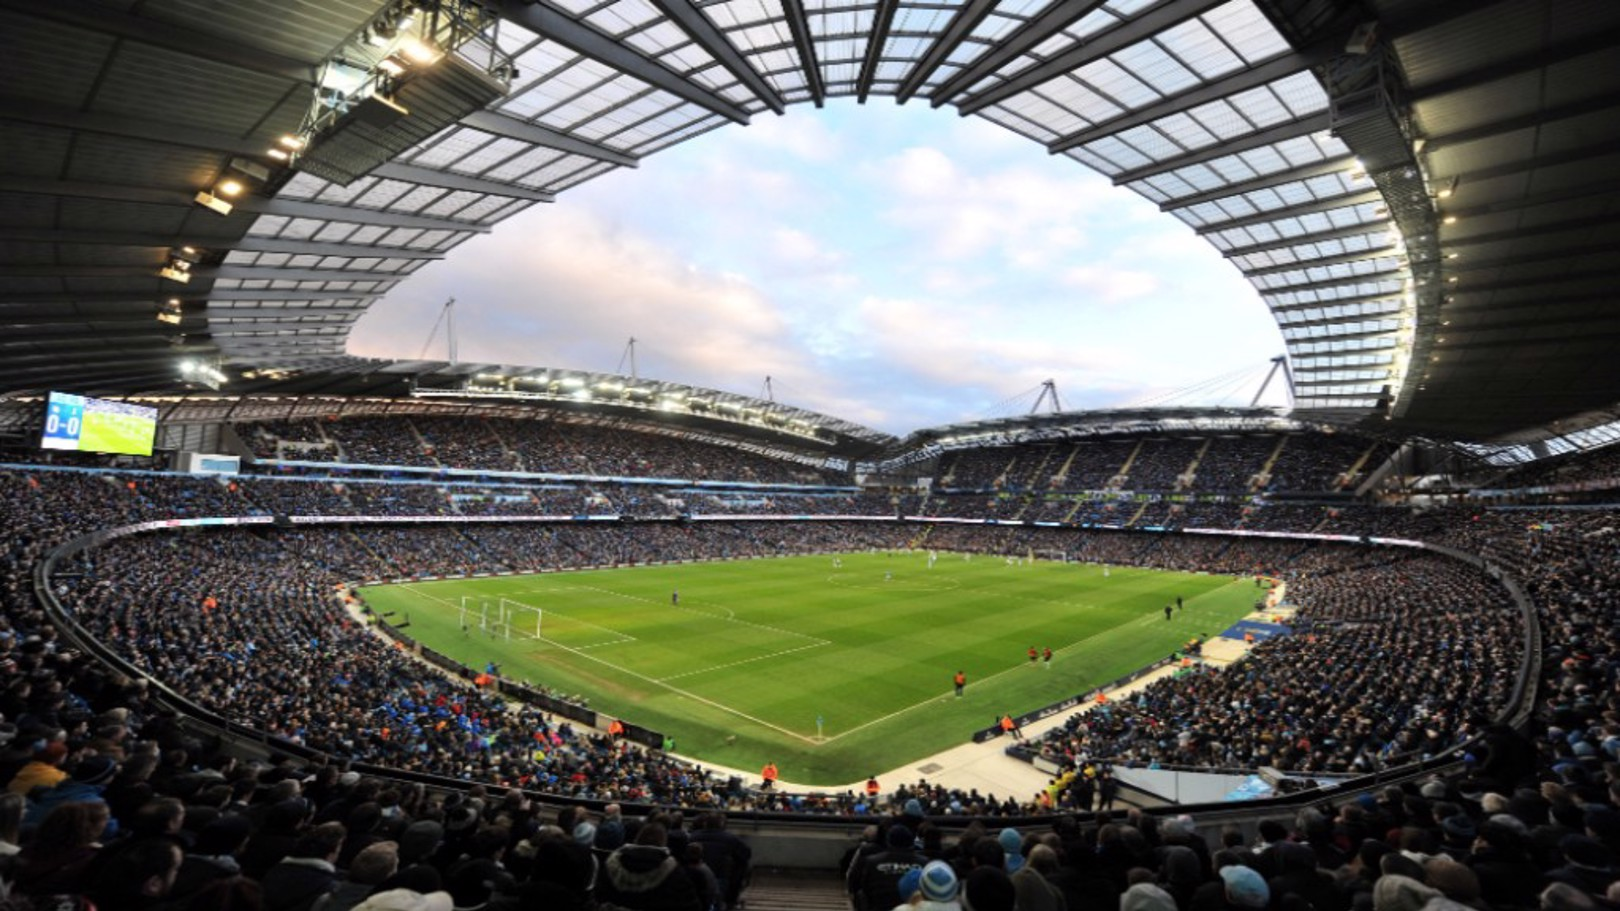 CLUB STATEMENT: Manchester City FC is fully cooperating in good faith with the CFCB IC's ongoing investigation.